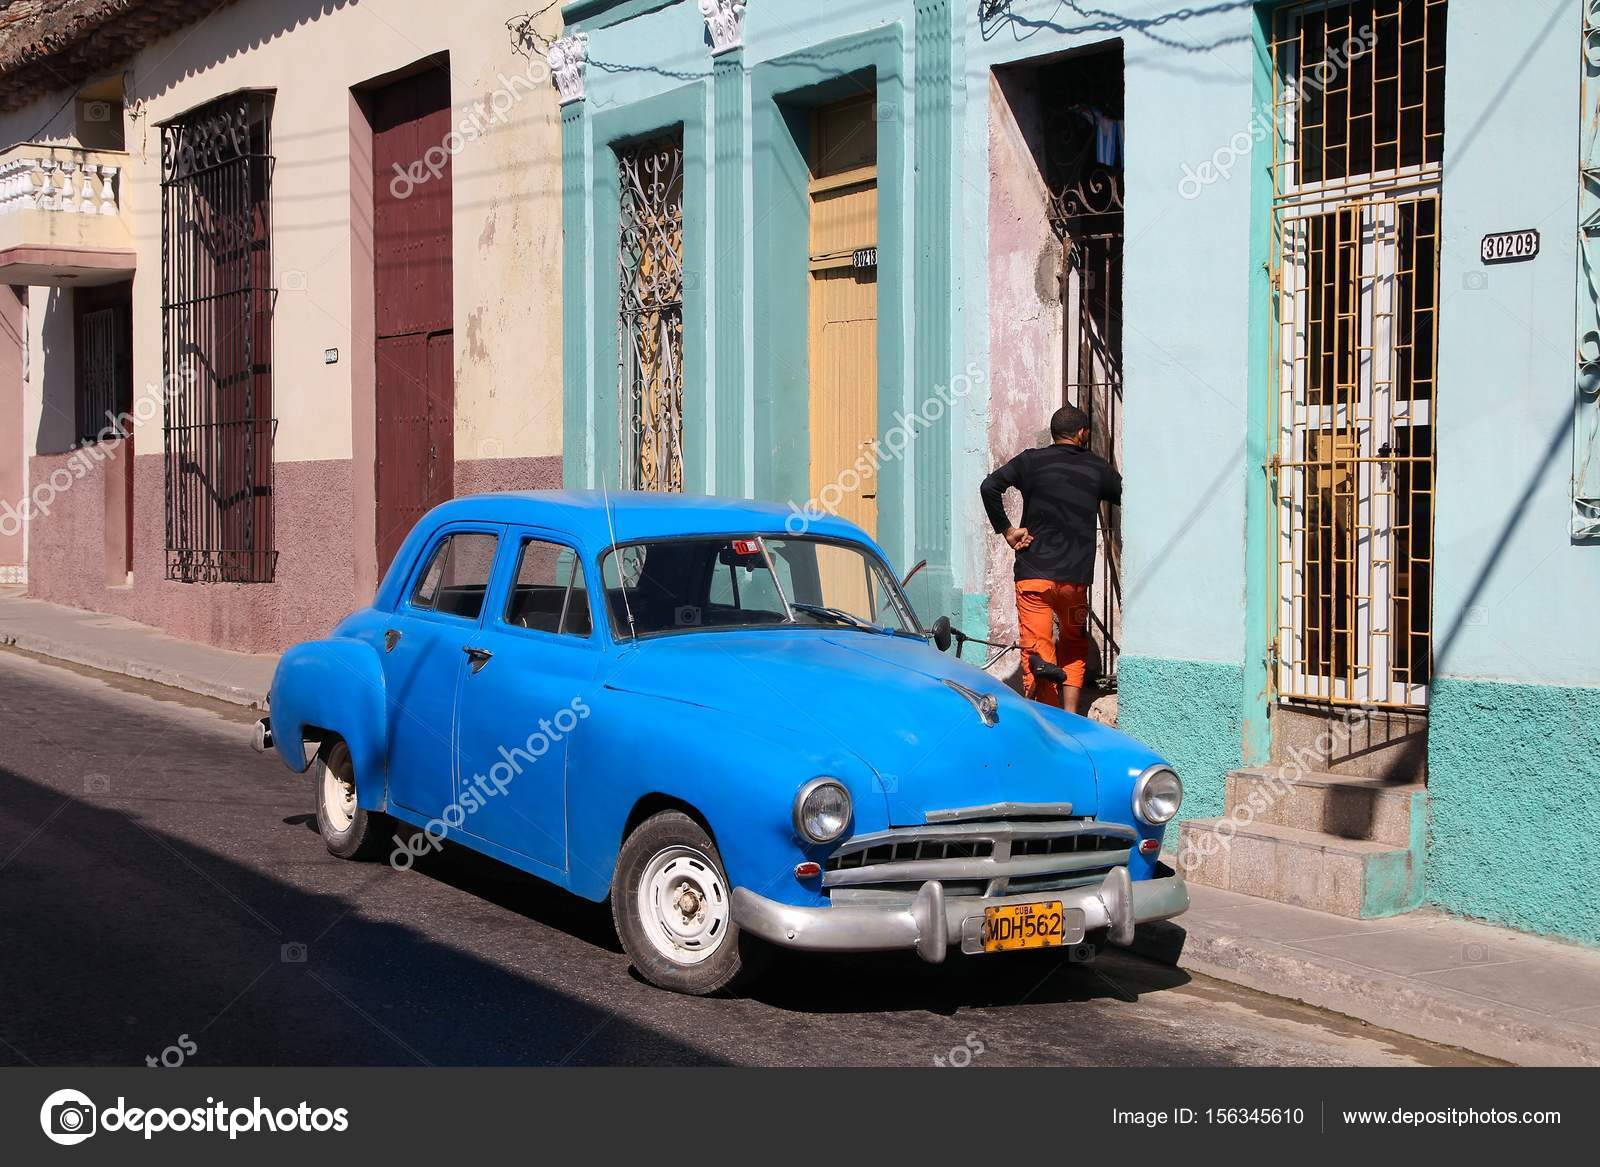 Old car in Cuba – Stock Editorial Photo © tupungato #156345610